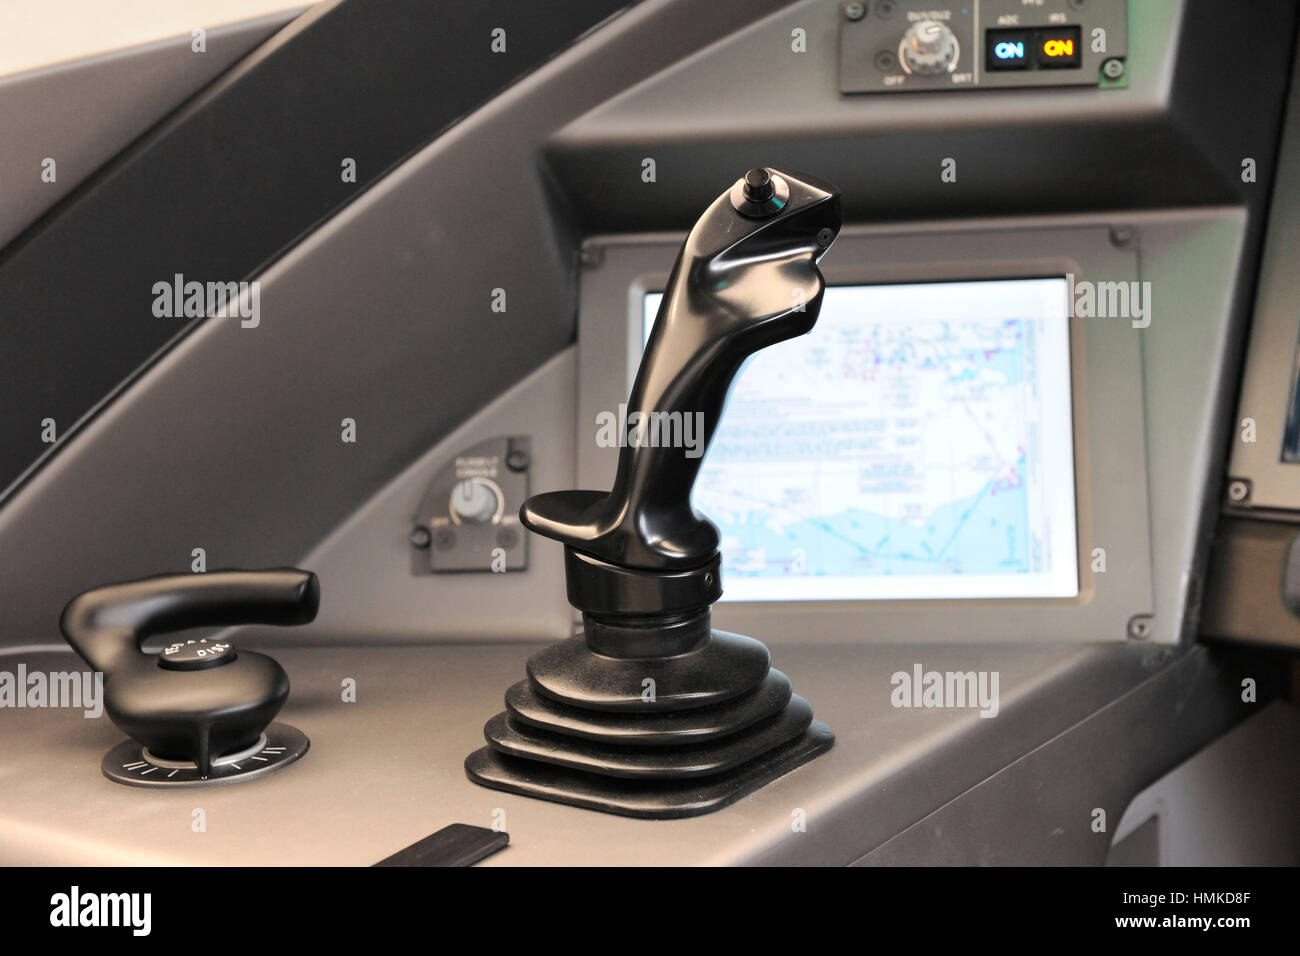 side-stick control in the MS-21 cockpit at the Farnborough Airshow 2010 - Stock Image